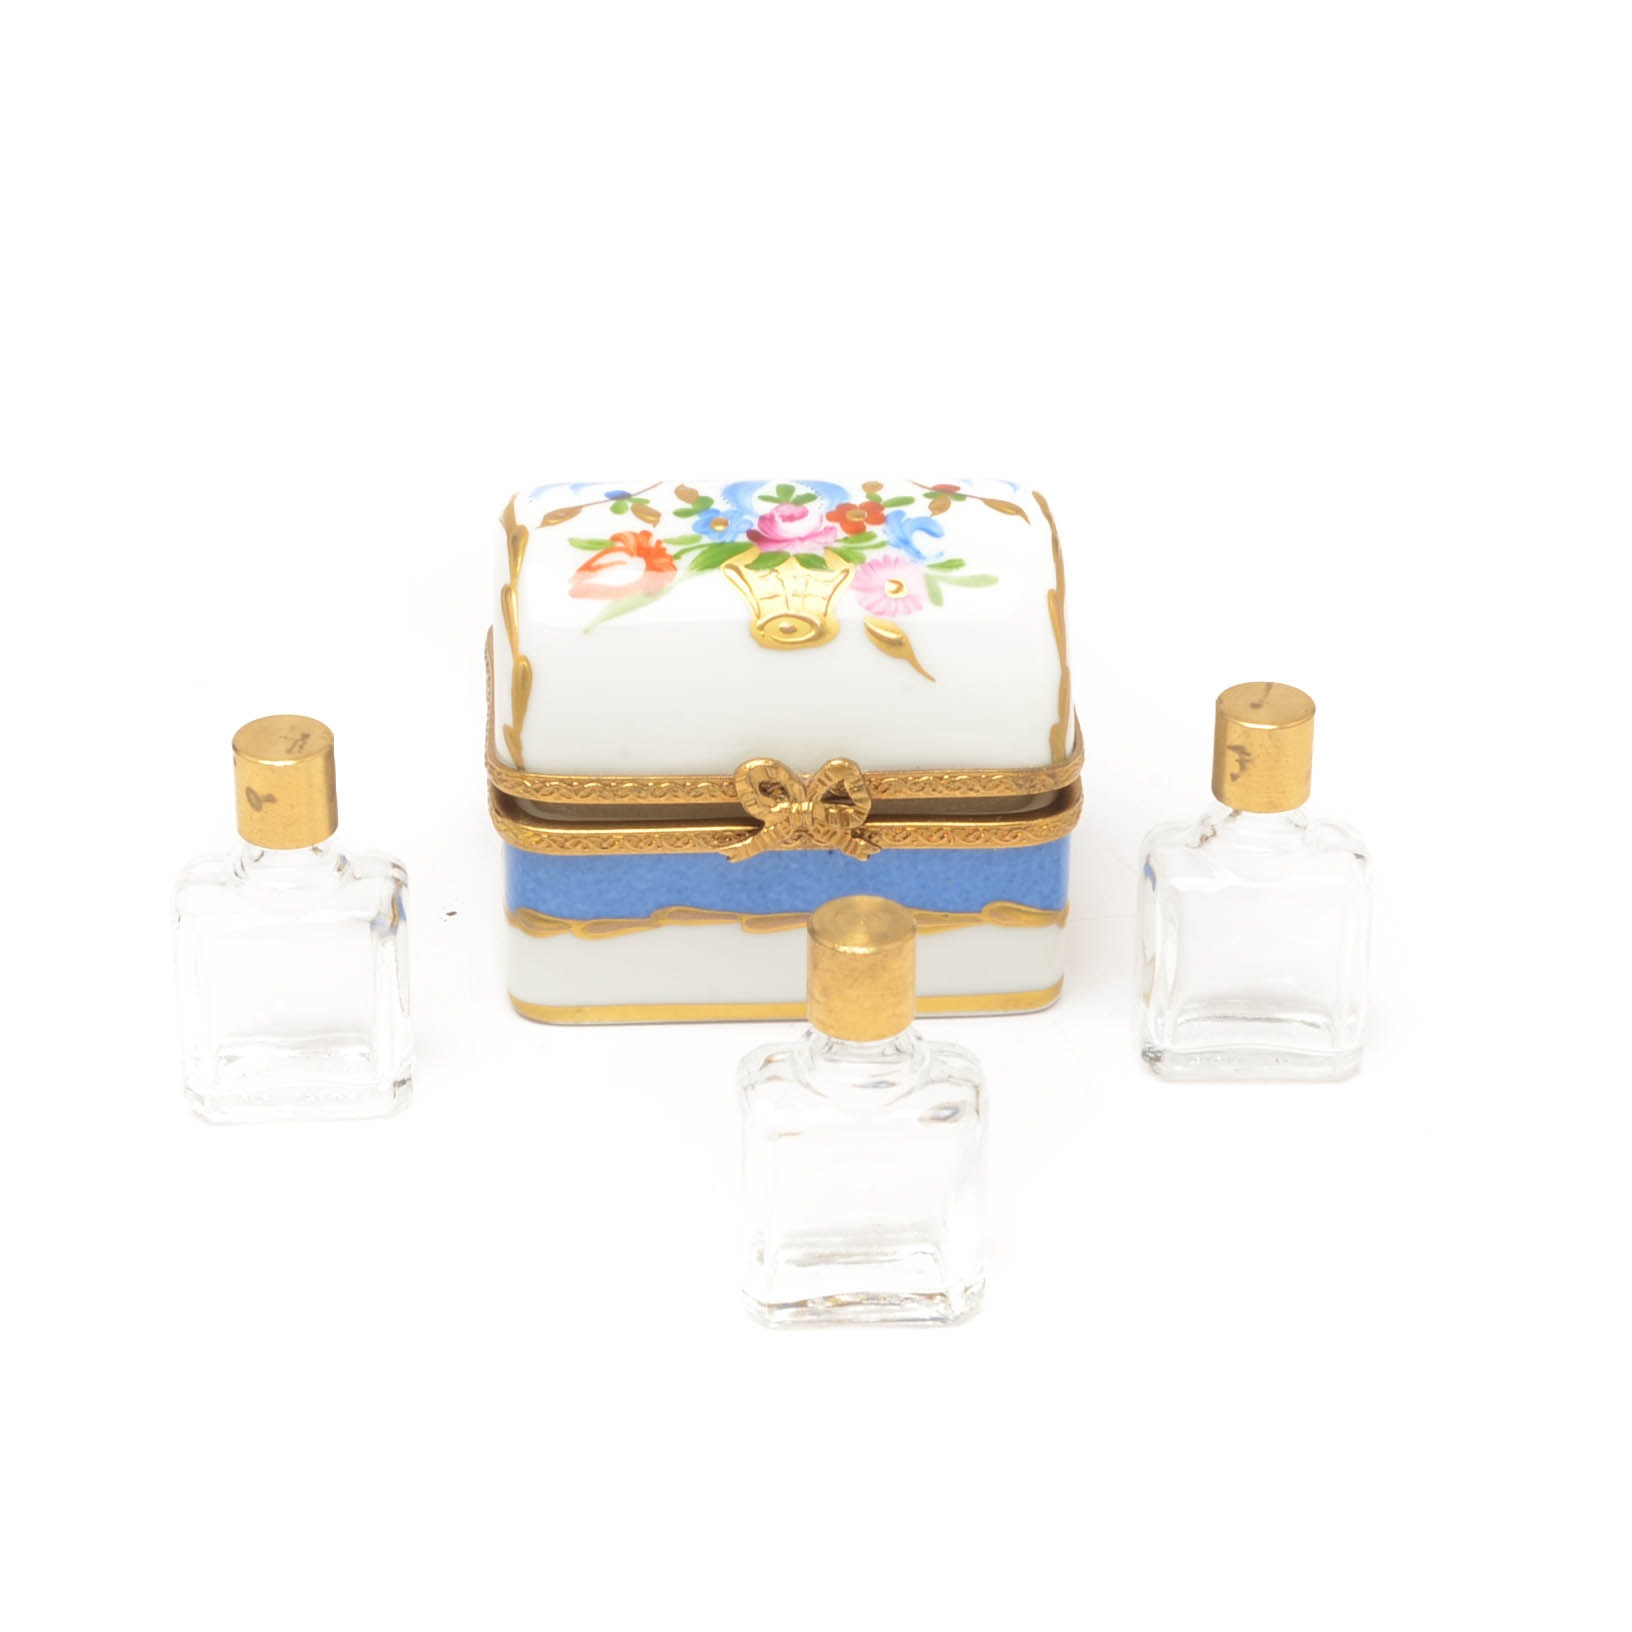 Limoges Perfume Trinket Box Signed by Laure Selignac